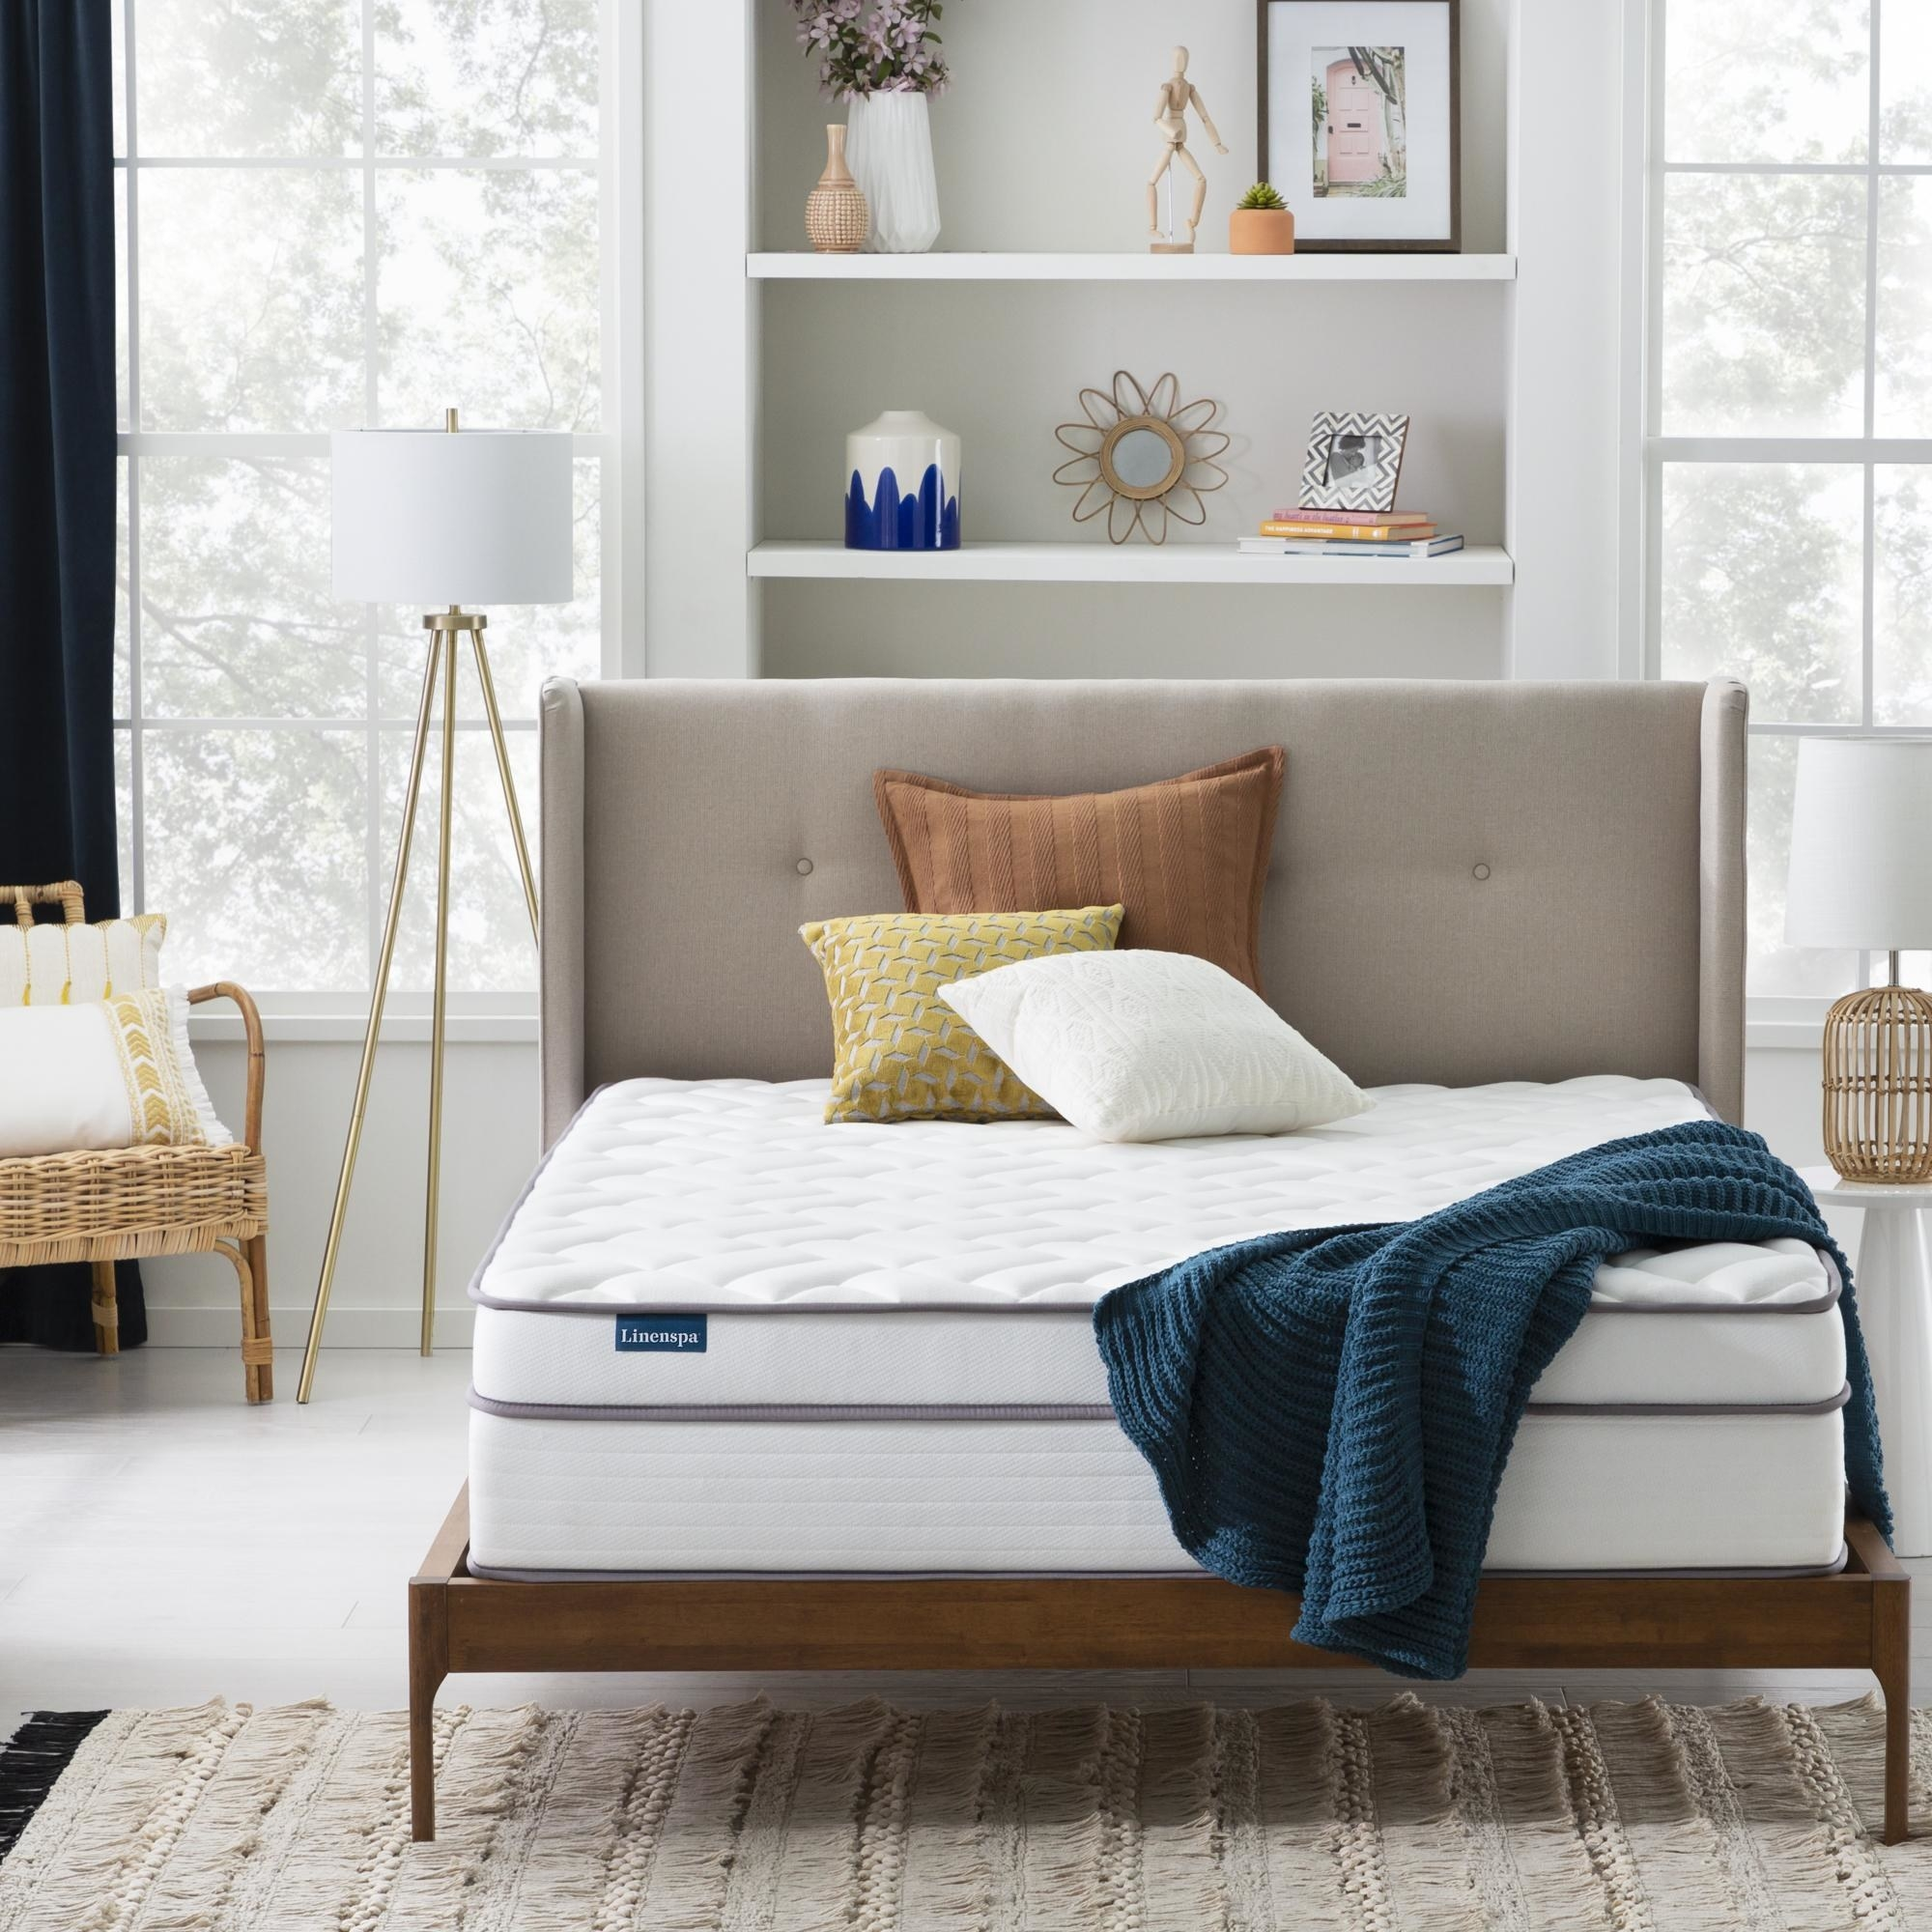 a mattress with two pillows and a blanket sitting on a bed frame in the middle of the room